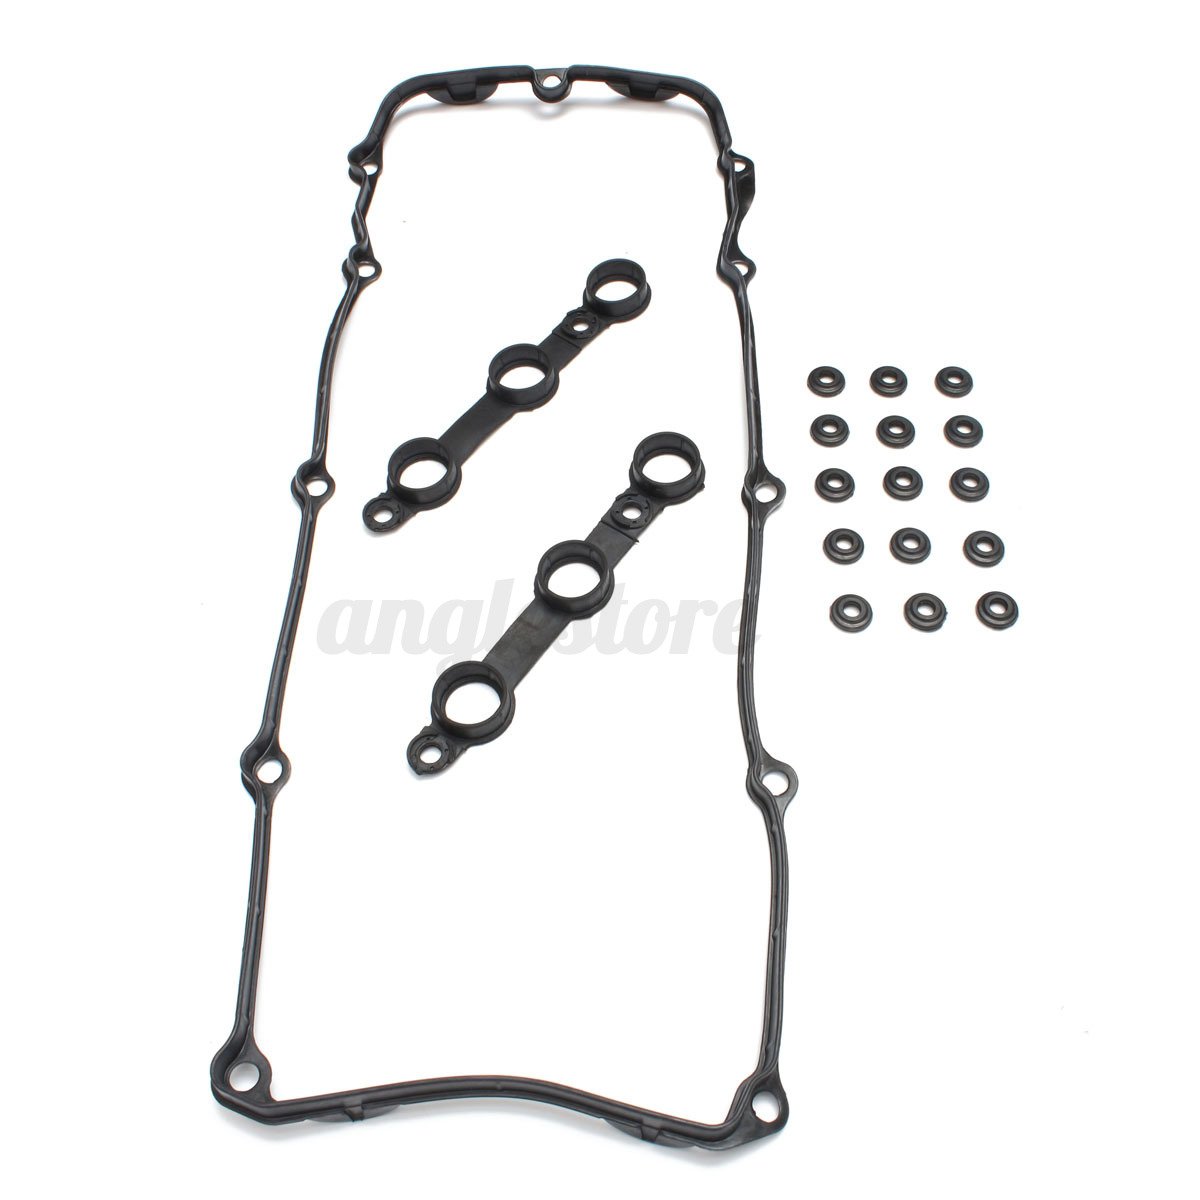 VALVE COVER GASKET SET FOR BMW E46 E39 E83 E85 E53 320I